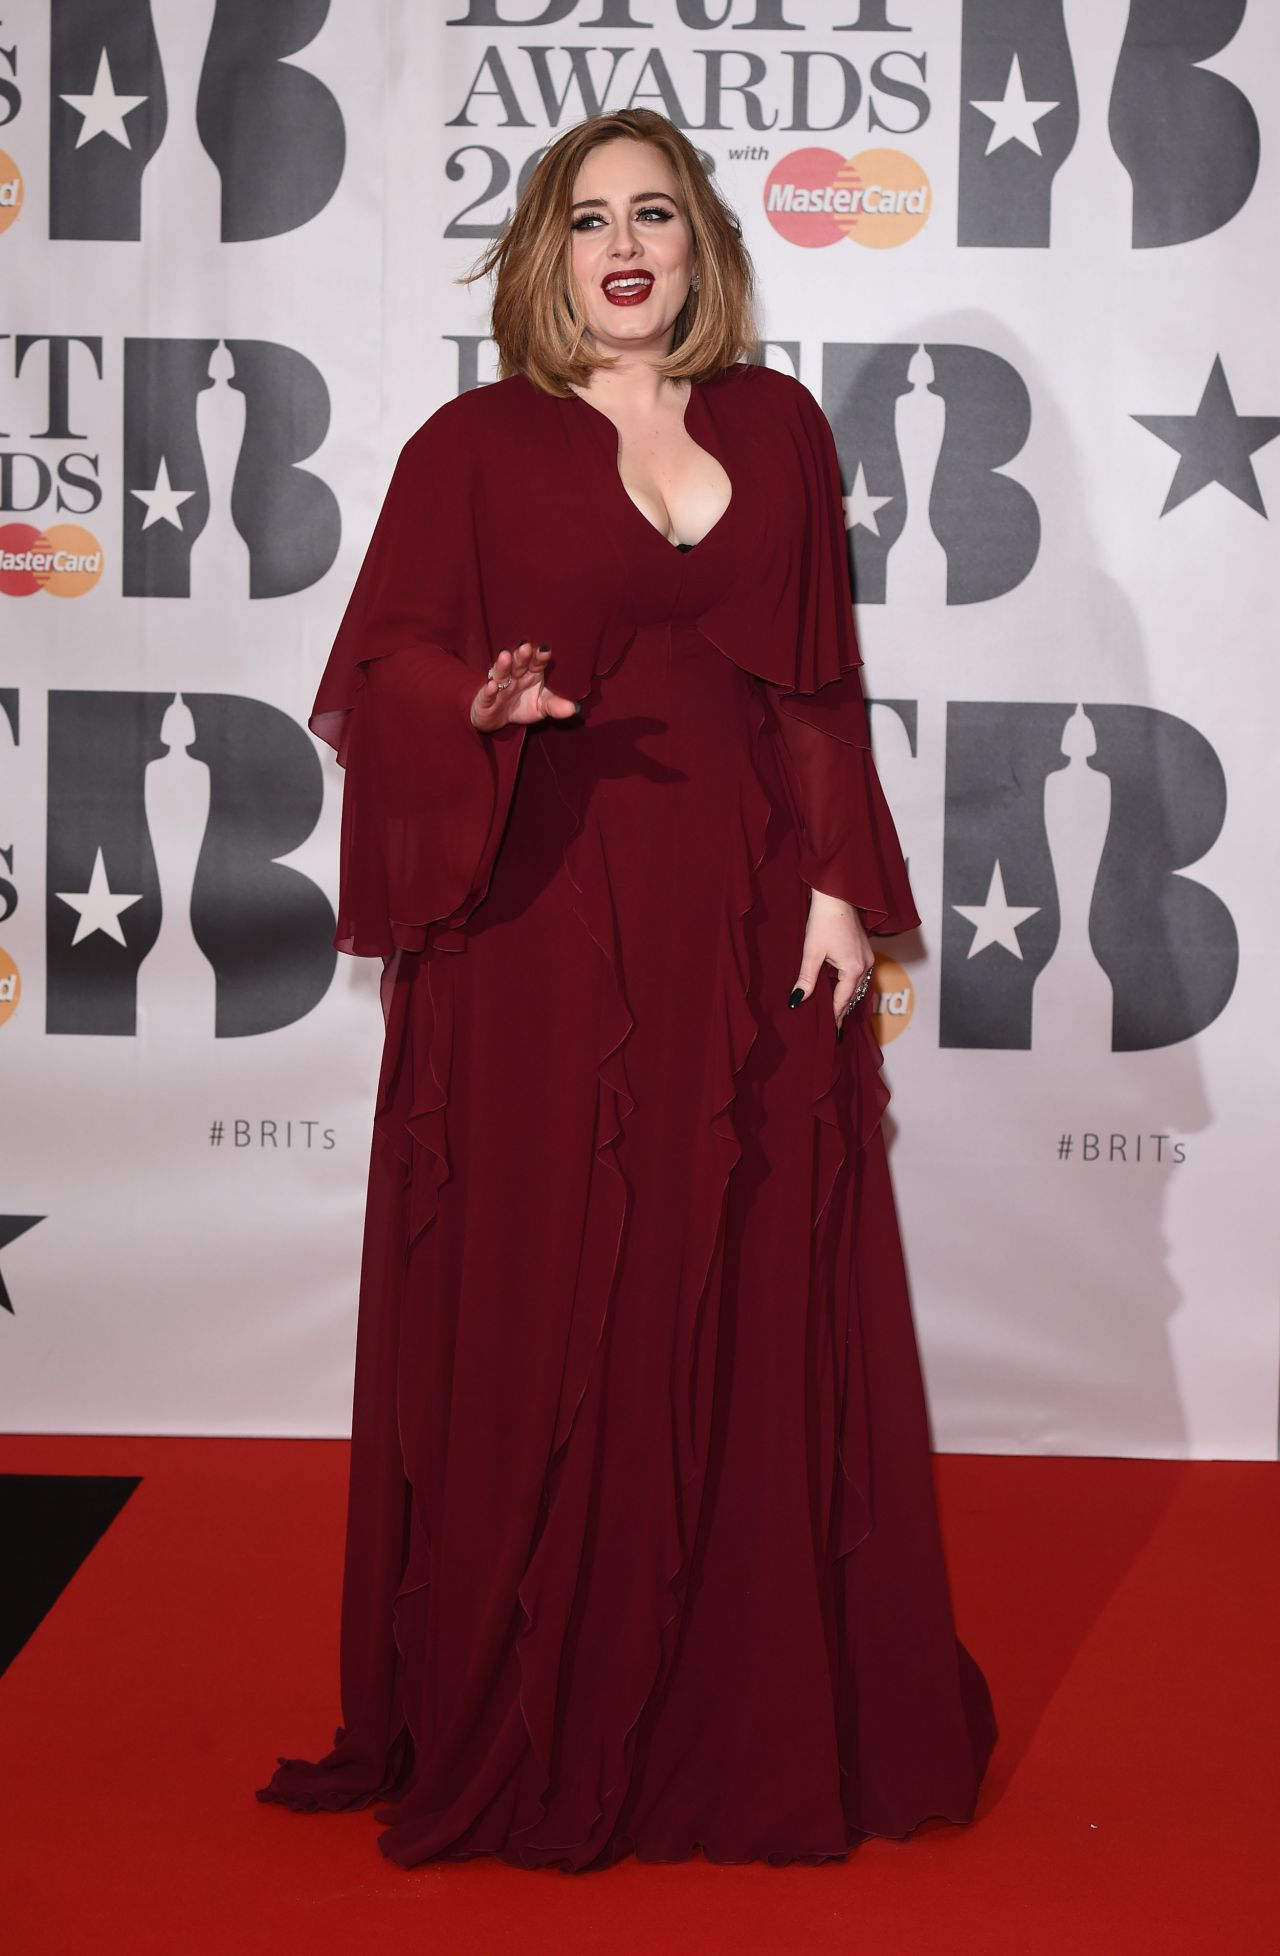 ADELE at Brit Awards 2016 in London 02/24/2016 - HawtCelebs